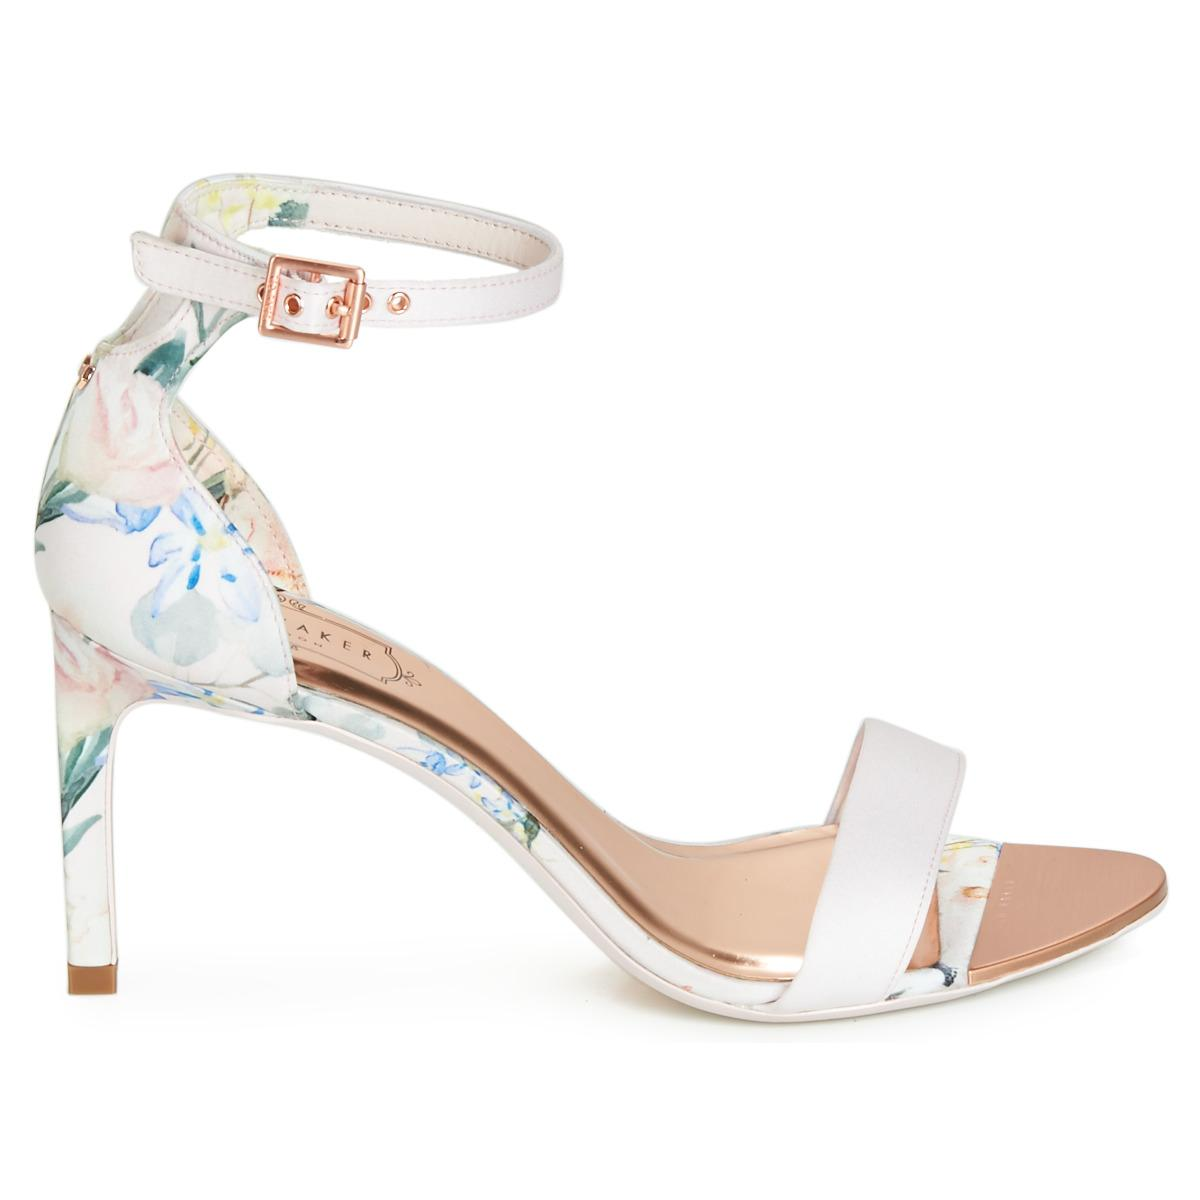 79a32d6c8ff Ted Baker Ulaniip Sandals in Pink - Lyst